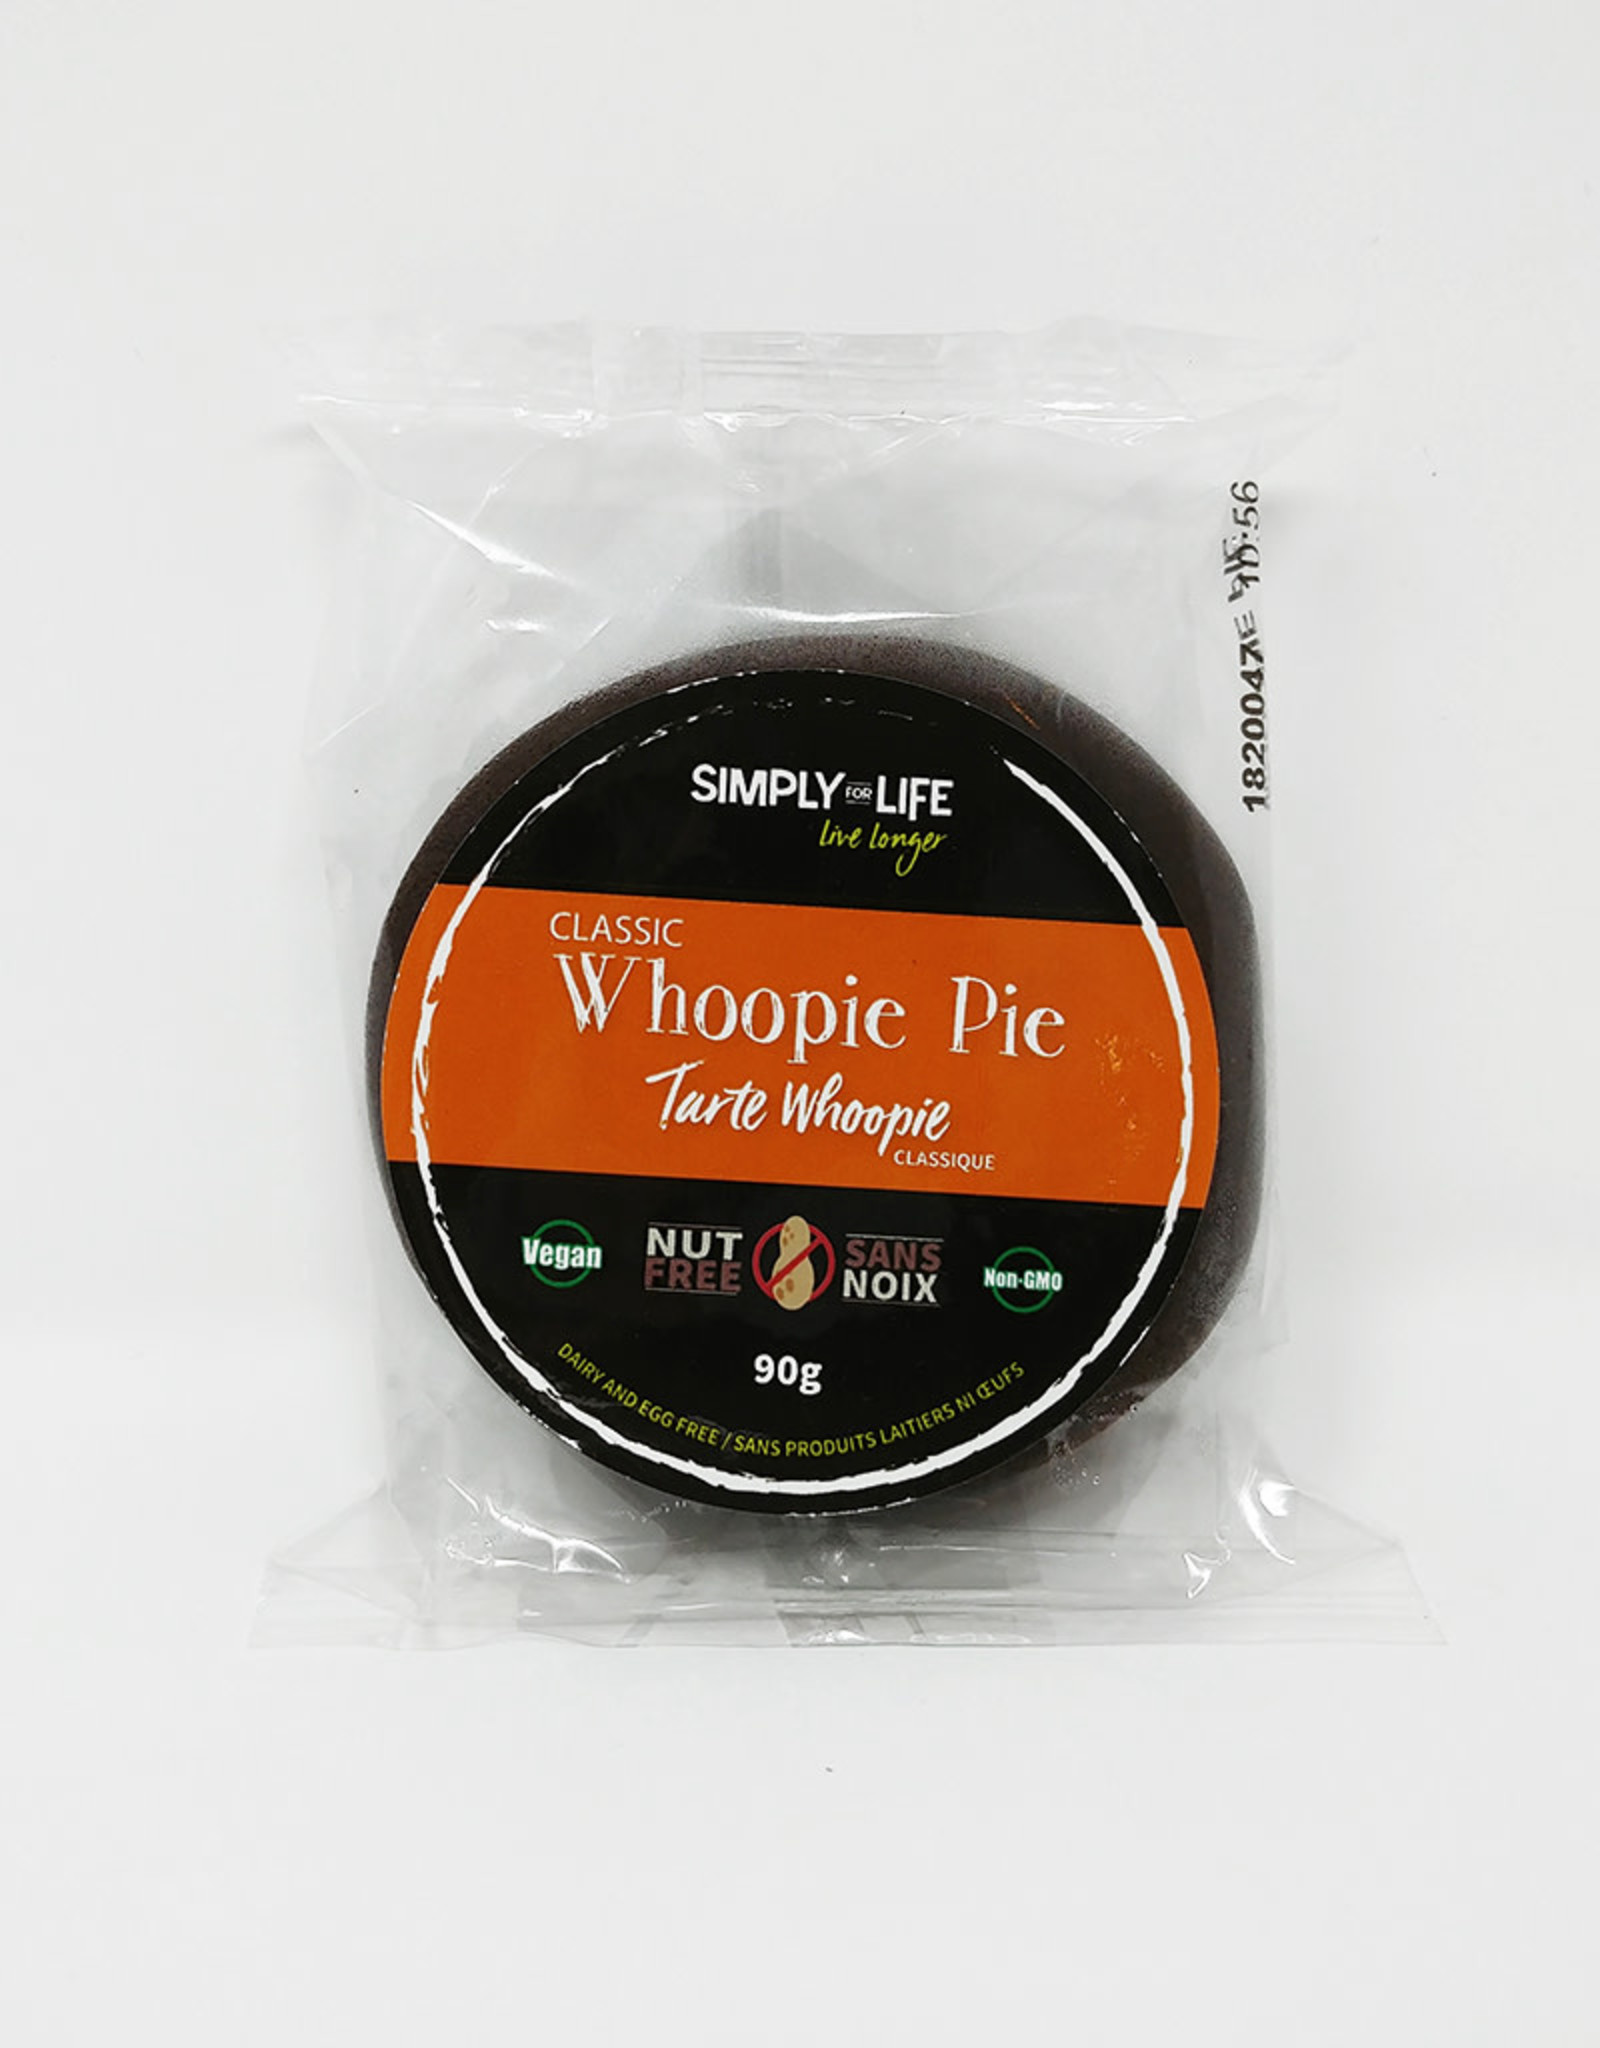 Sweets From The Earth Sweets From The Earth - SFL Whoopie Pie, Classic (90g)